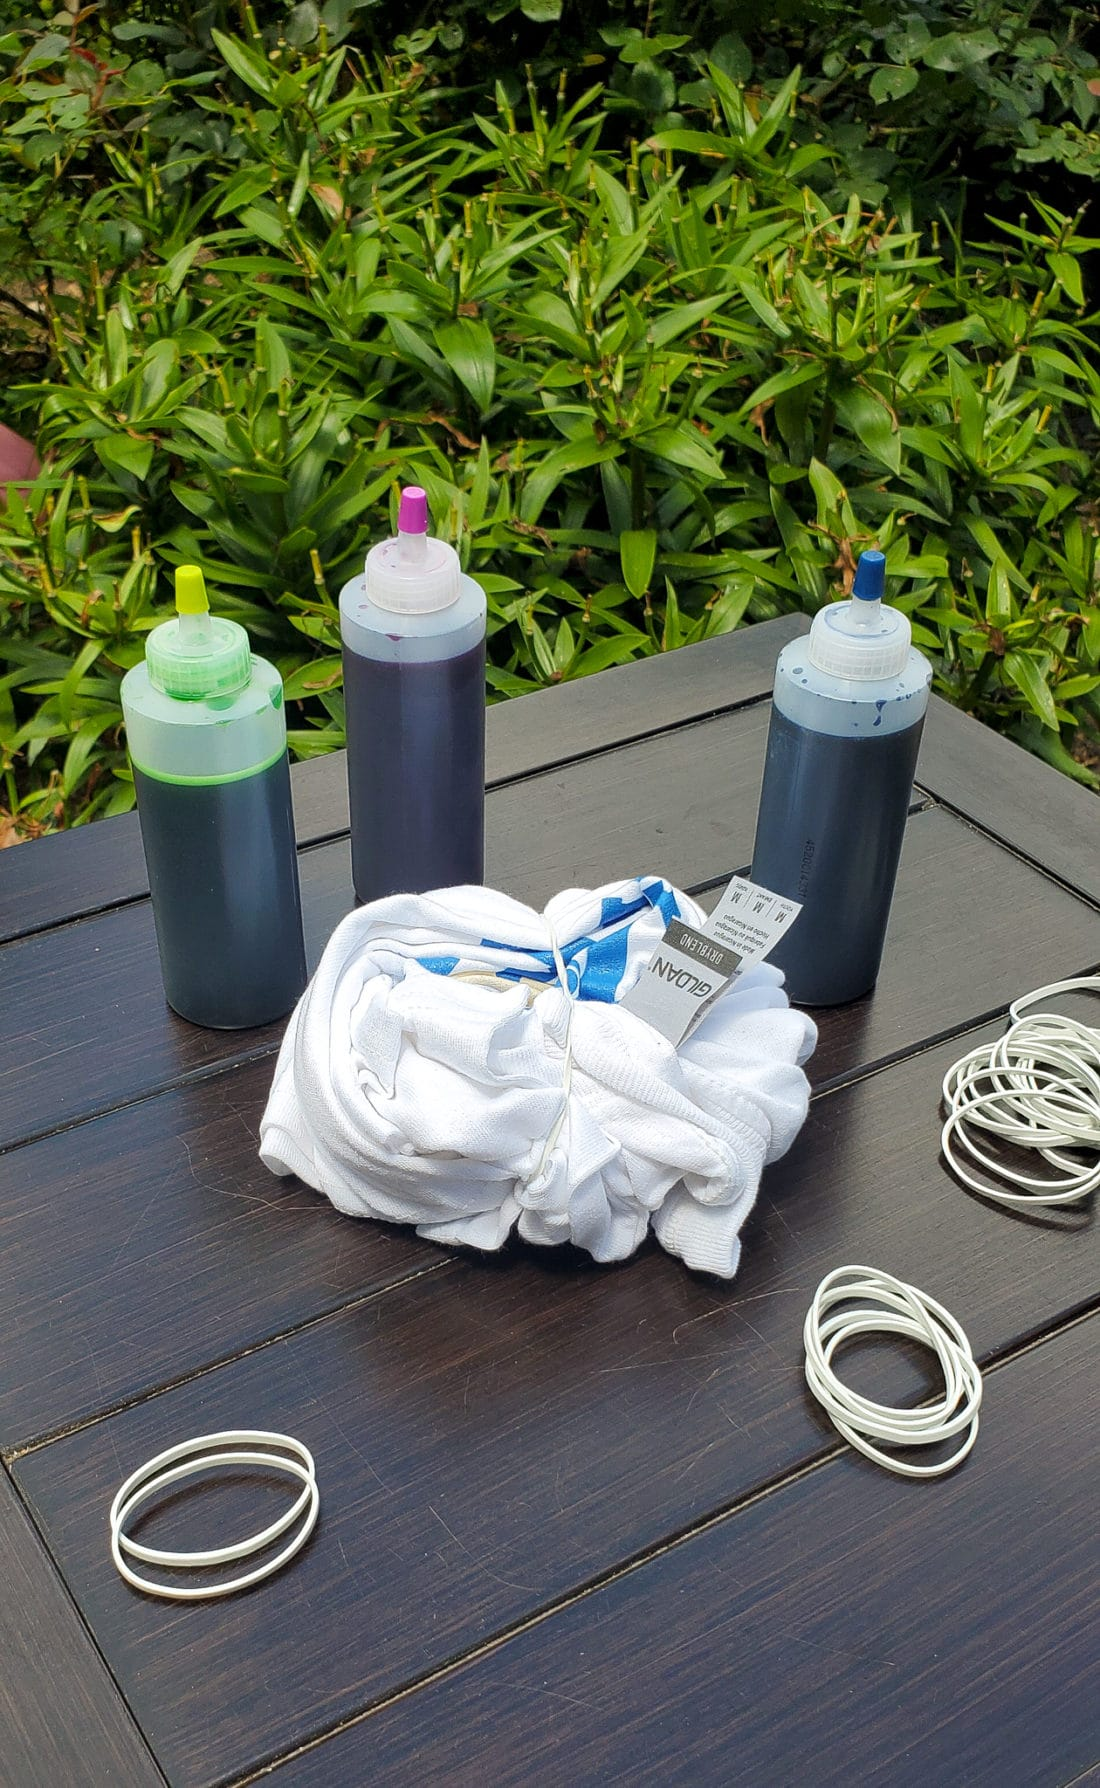 Camper Warner Bros. Tie-Dye Camper Shirts Step 4. Join us as we adventure through 8 weeks of Virtual Camp Warner Bros. Each week will feature a new fun family friendly activity and a Warner Bros. Show or Movie. This week featured a Camper Shirt Tie-Dye activity.